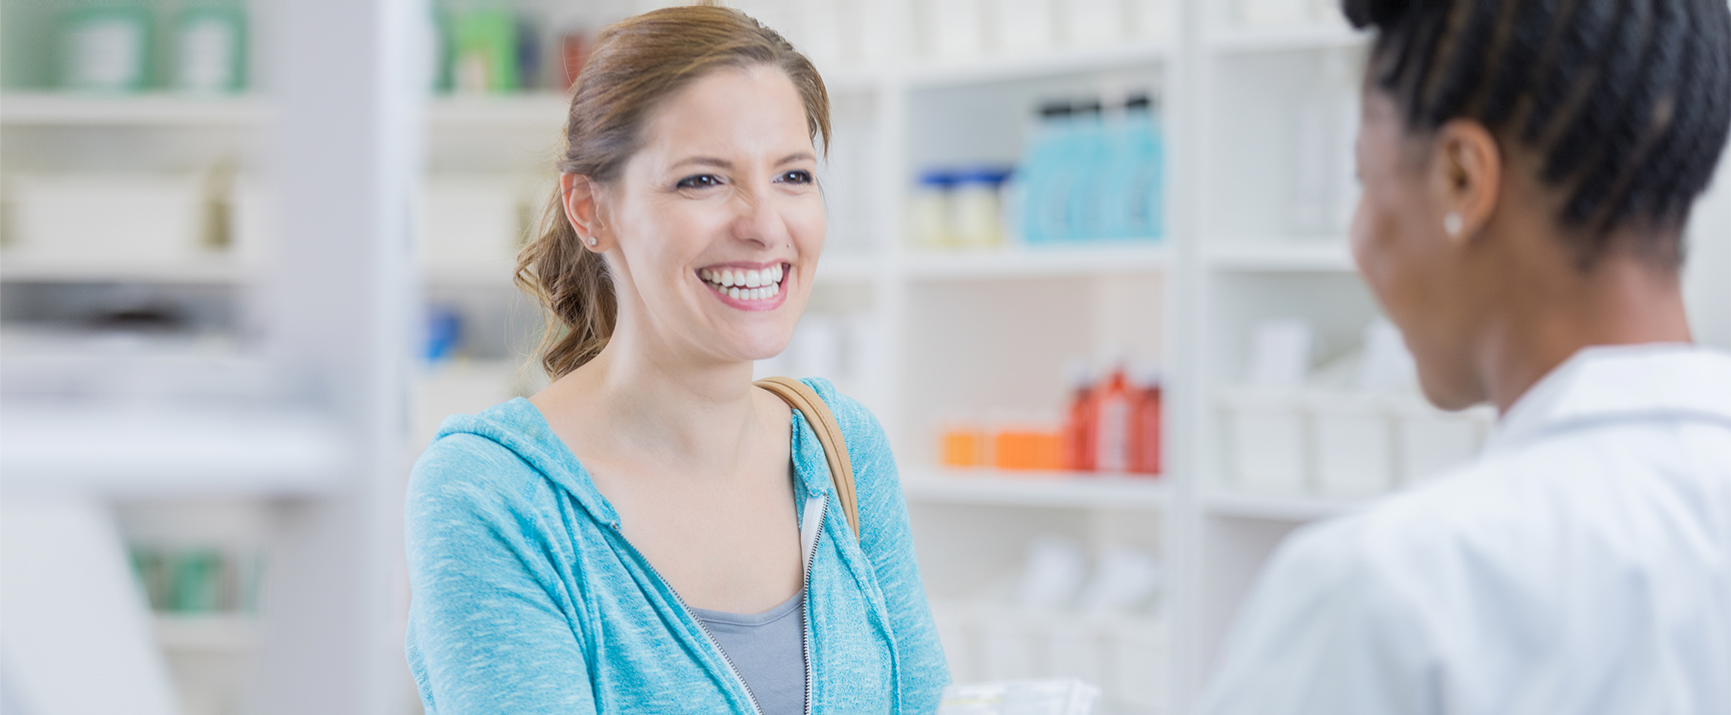 Temuka Pharmacy is your local pharmacy providing healthcare in the heart of the Temuka community